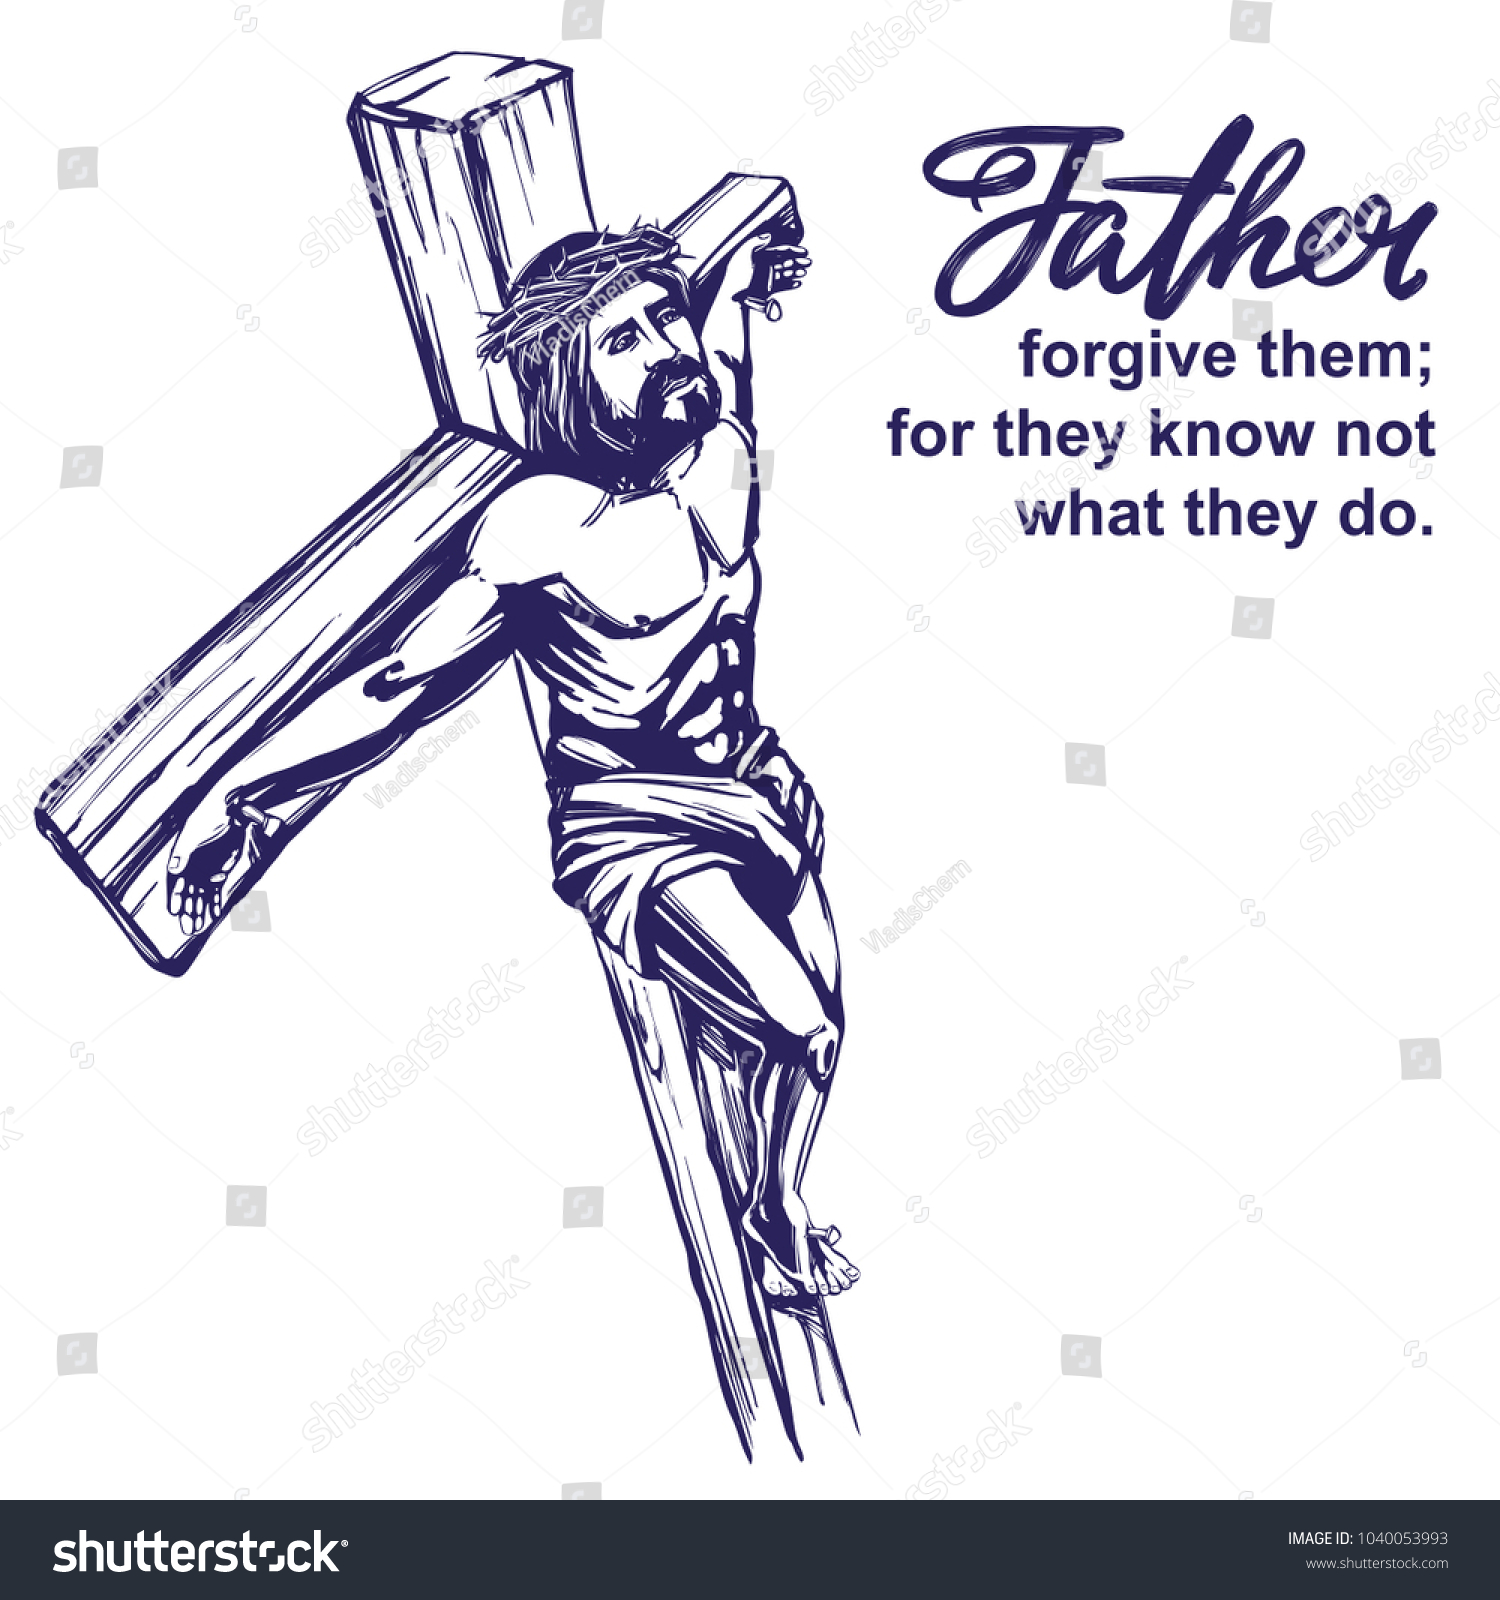 Jesus christ son god crucified on stock vector 1040053993 shutterstock jesus christ the son of god crucified on a wooden cross symbol of buycottarizona Gallery